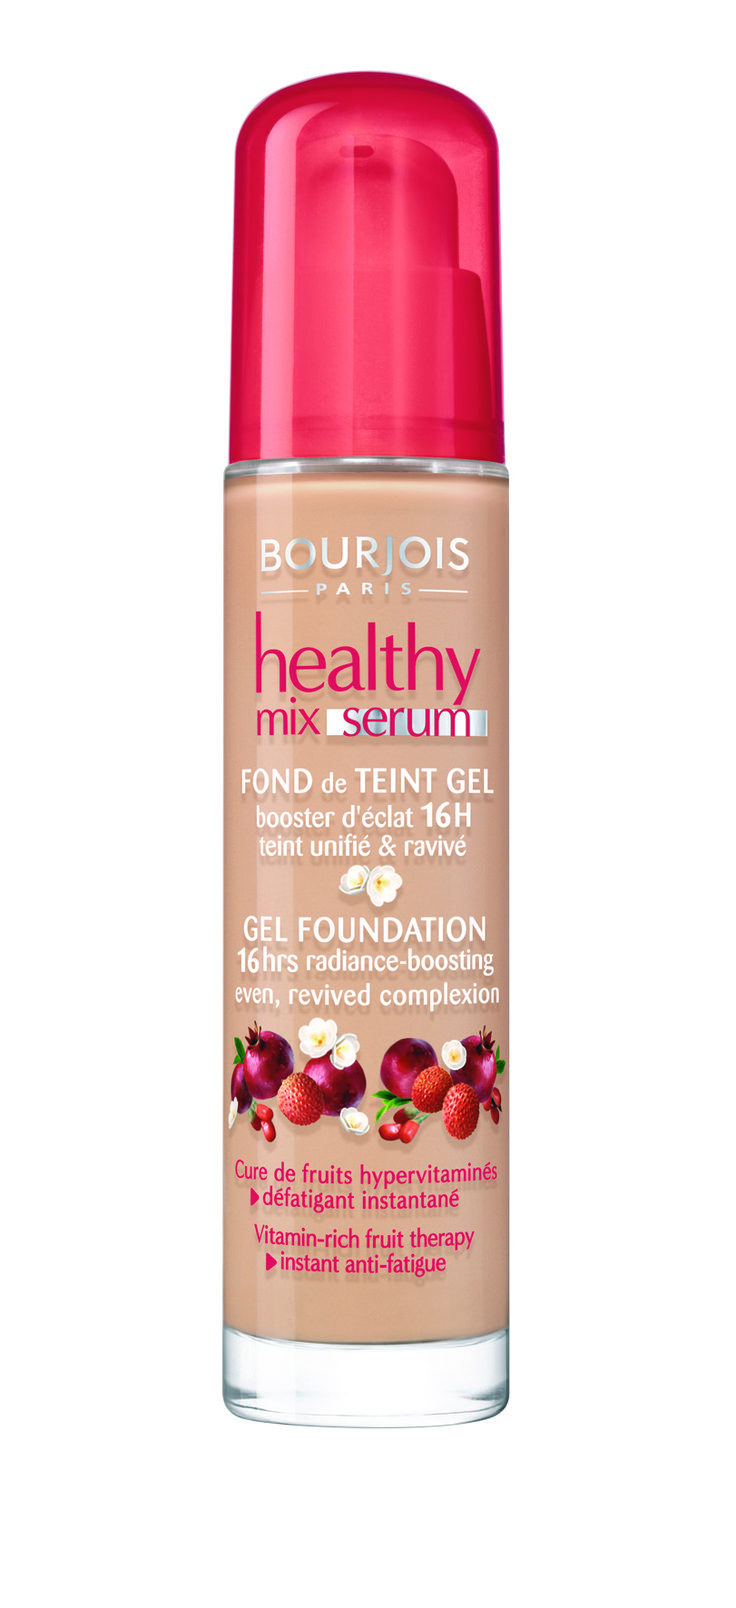 #BourjoisFrenchChic Healthy Mix Serum foundation